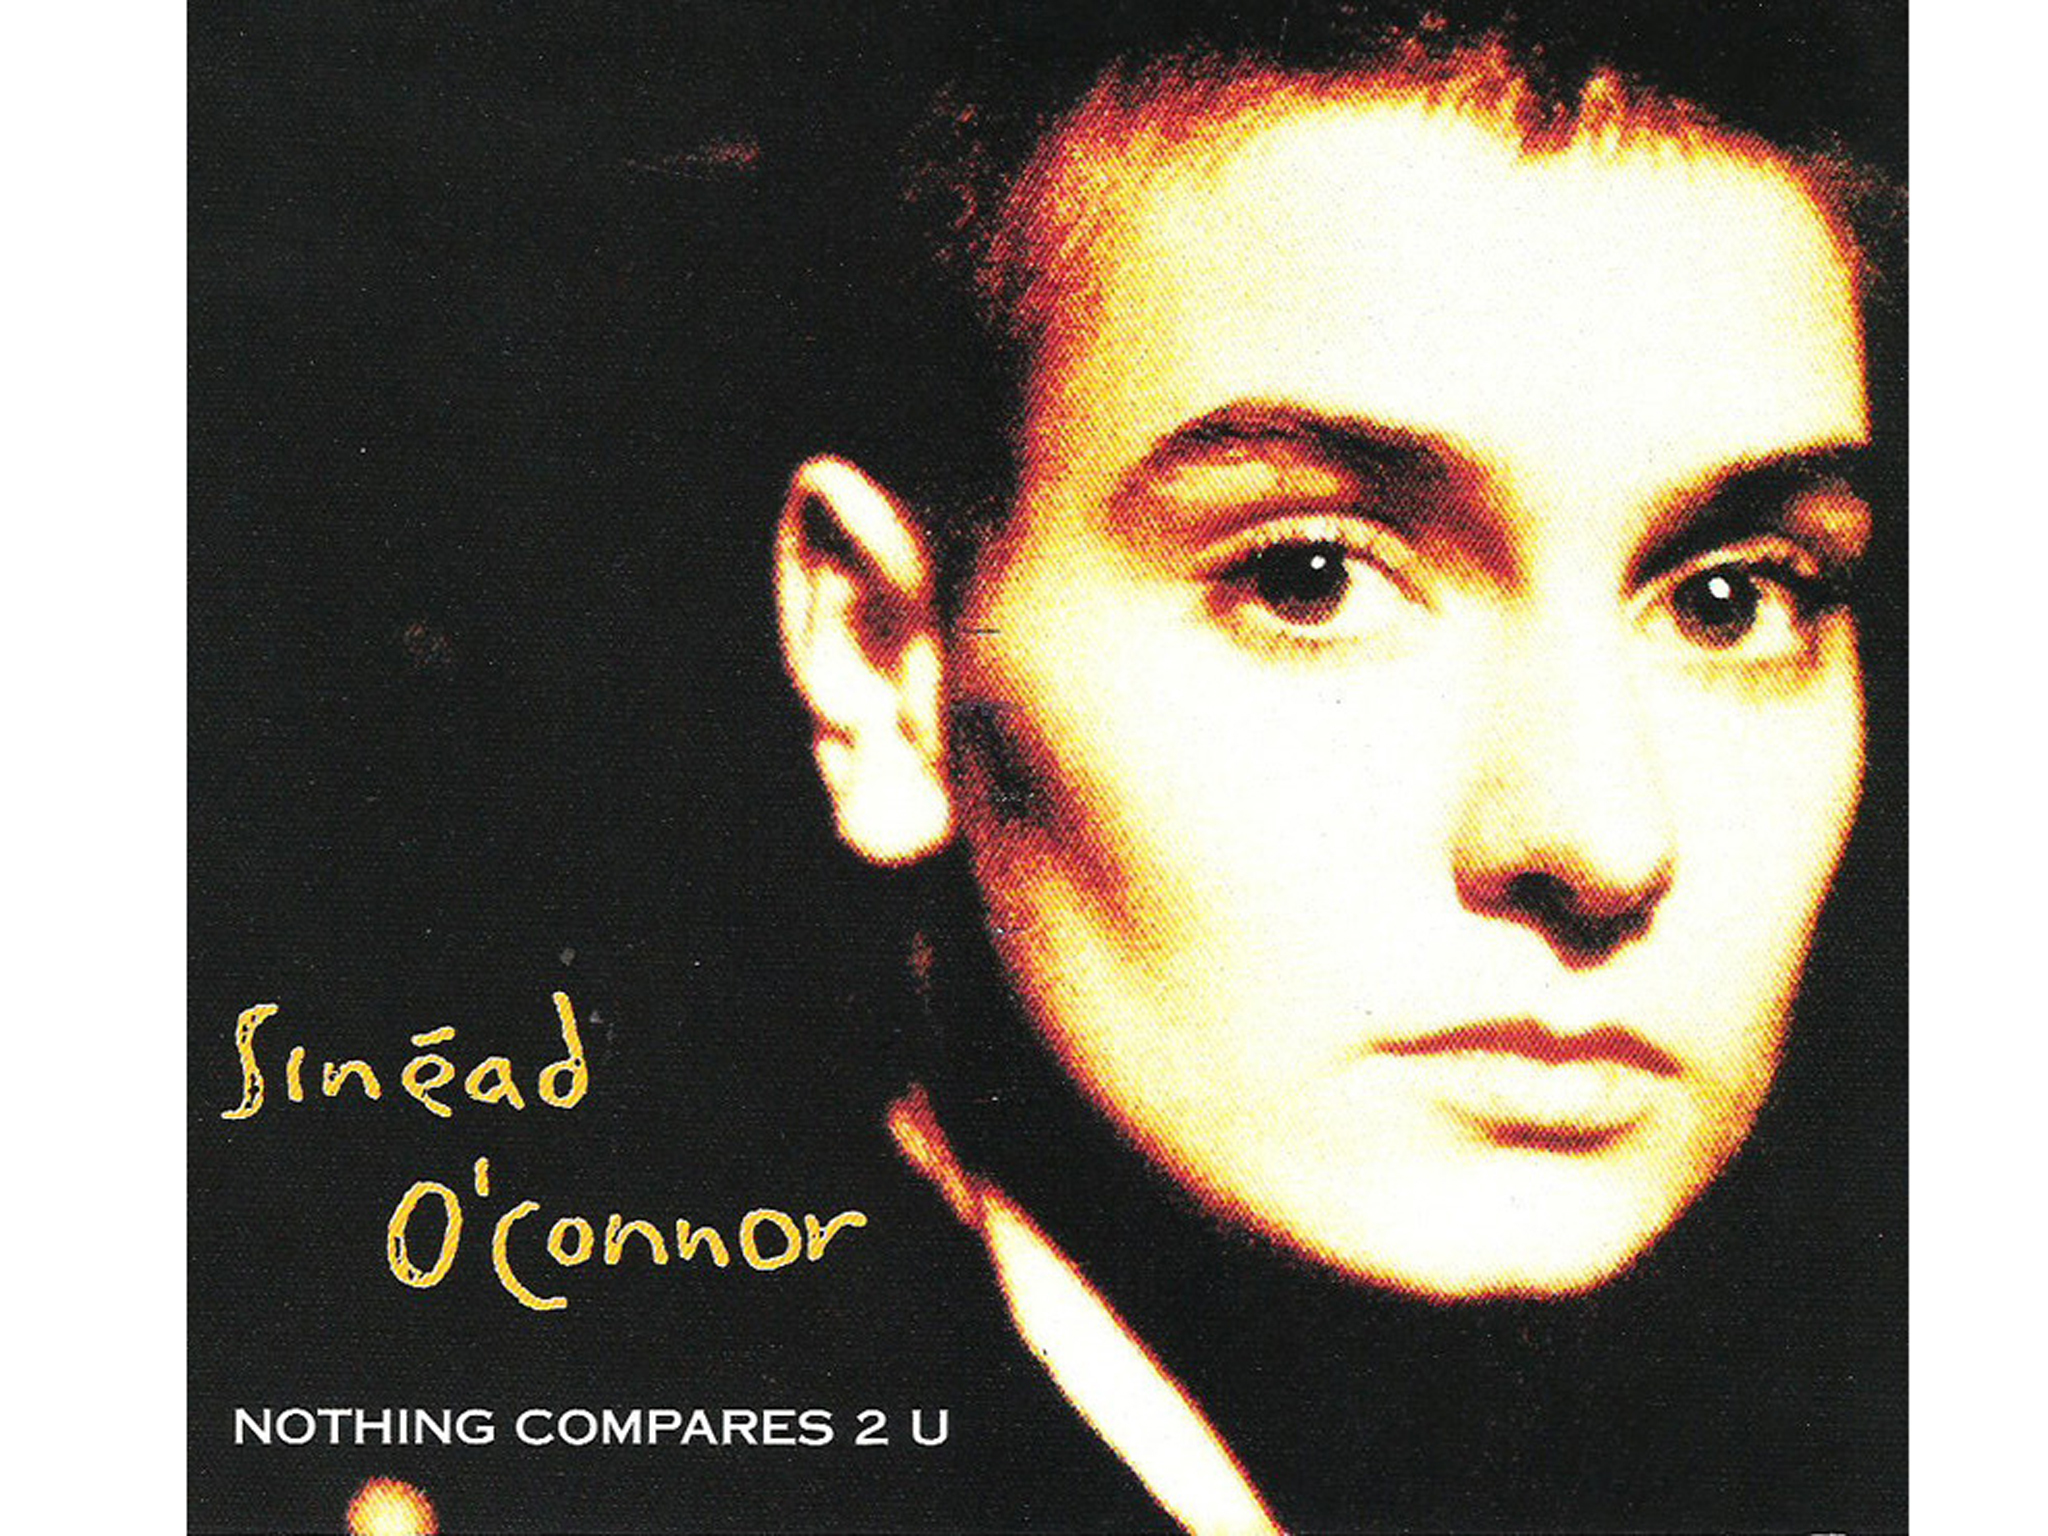 'Nothing Compares 2 U' – Sinead O'Connor